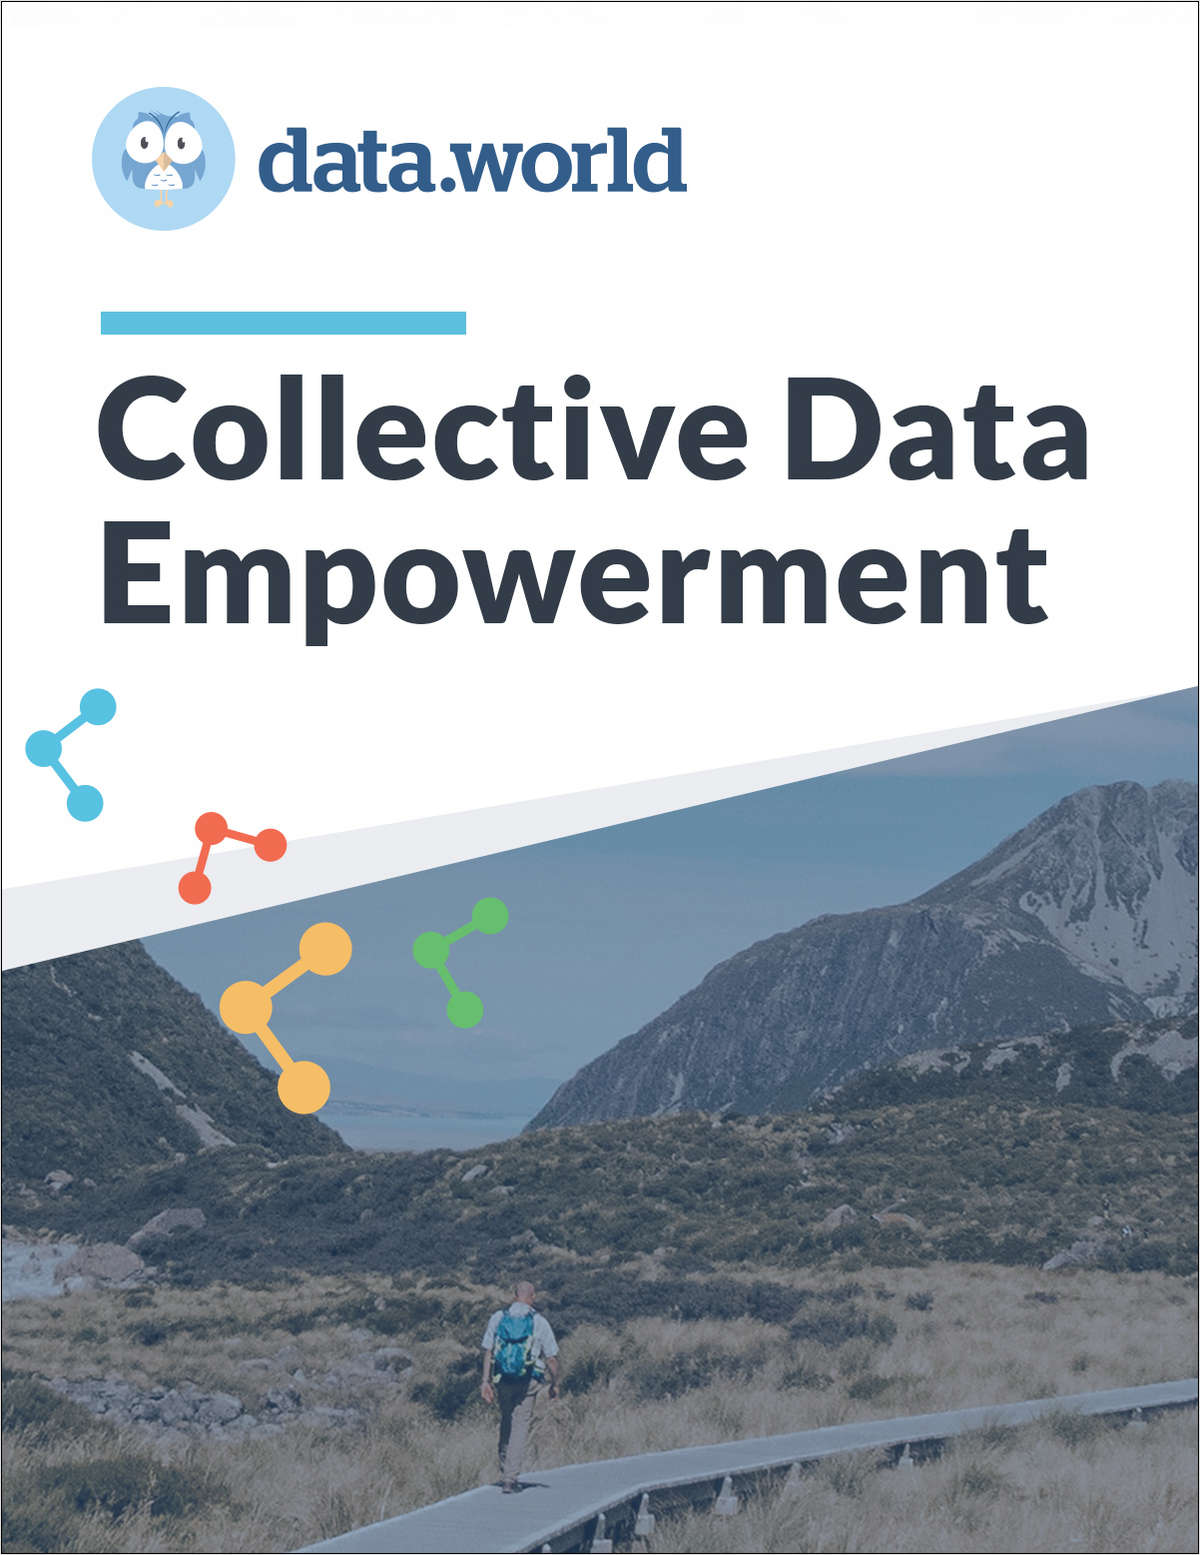 How to build a data-driven culture through Collective Data Empowerment